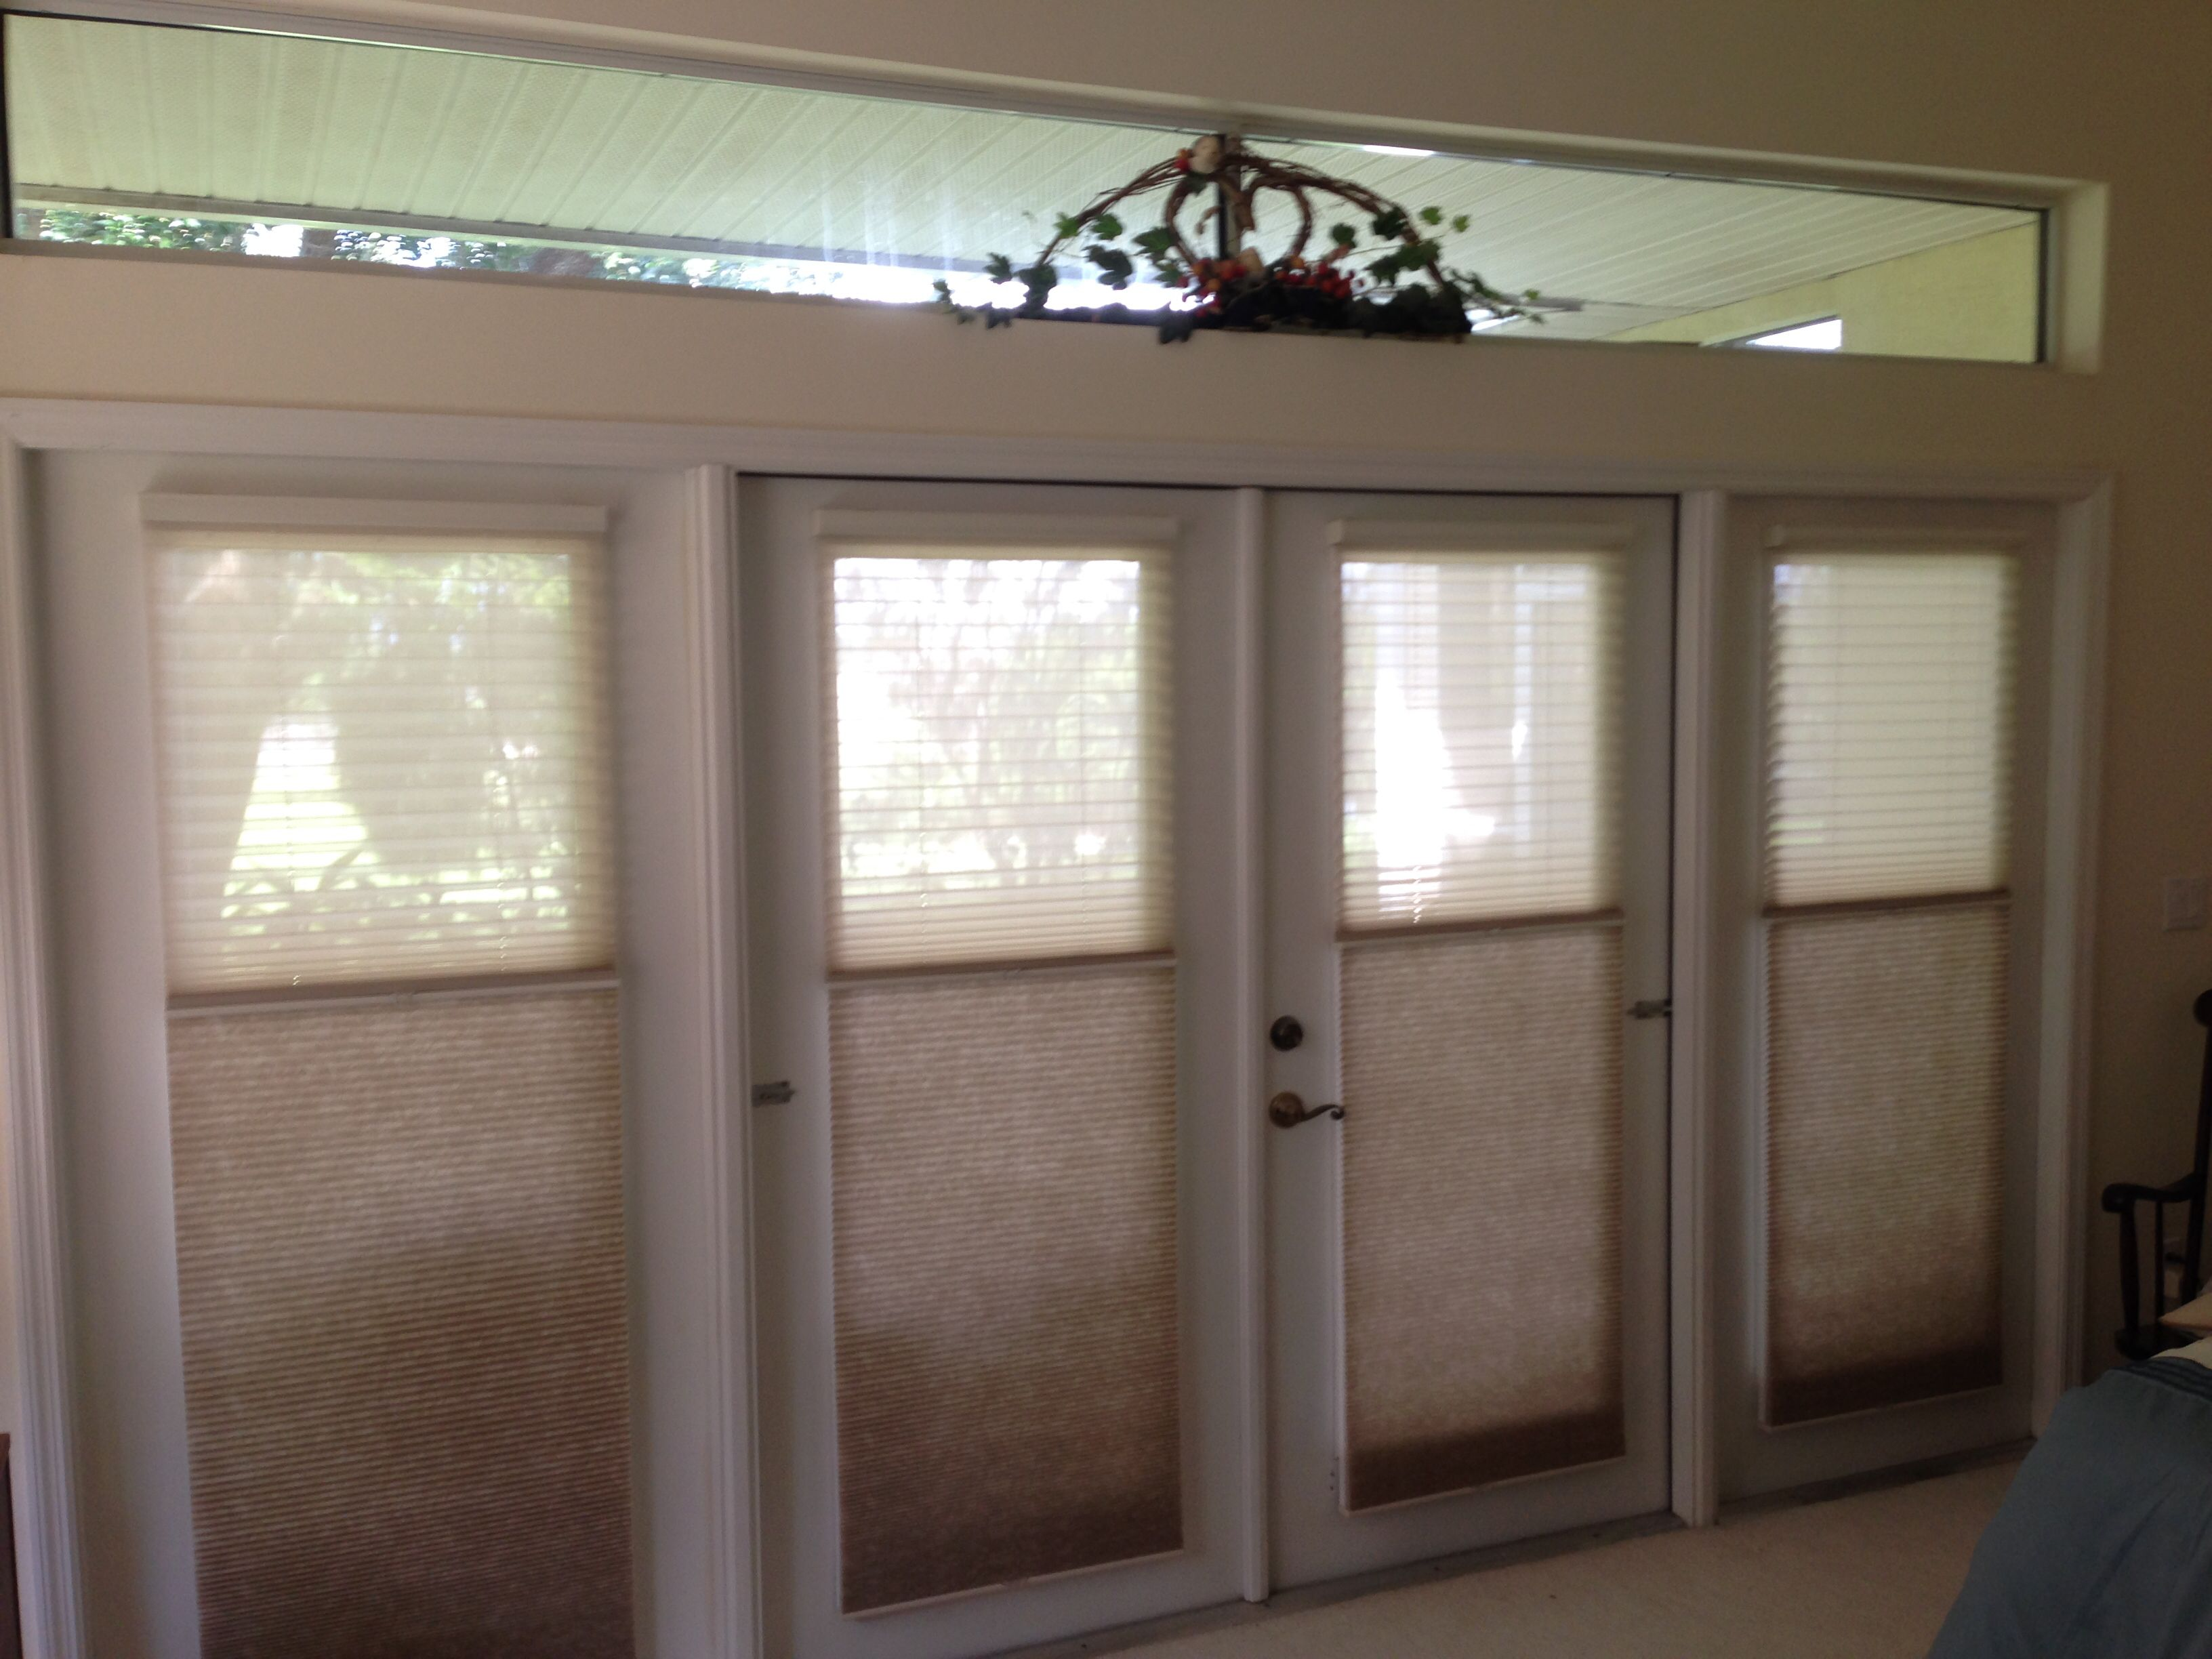 Unison Cellular Shades Combine Sheer On Top And Light